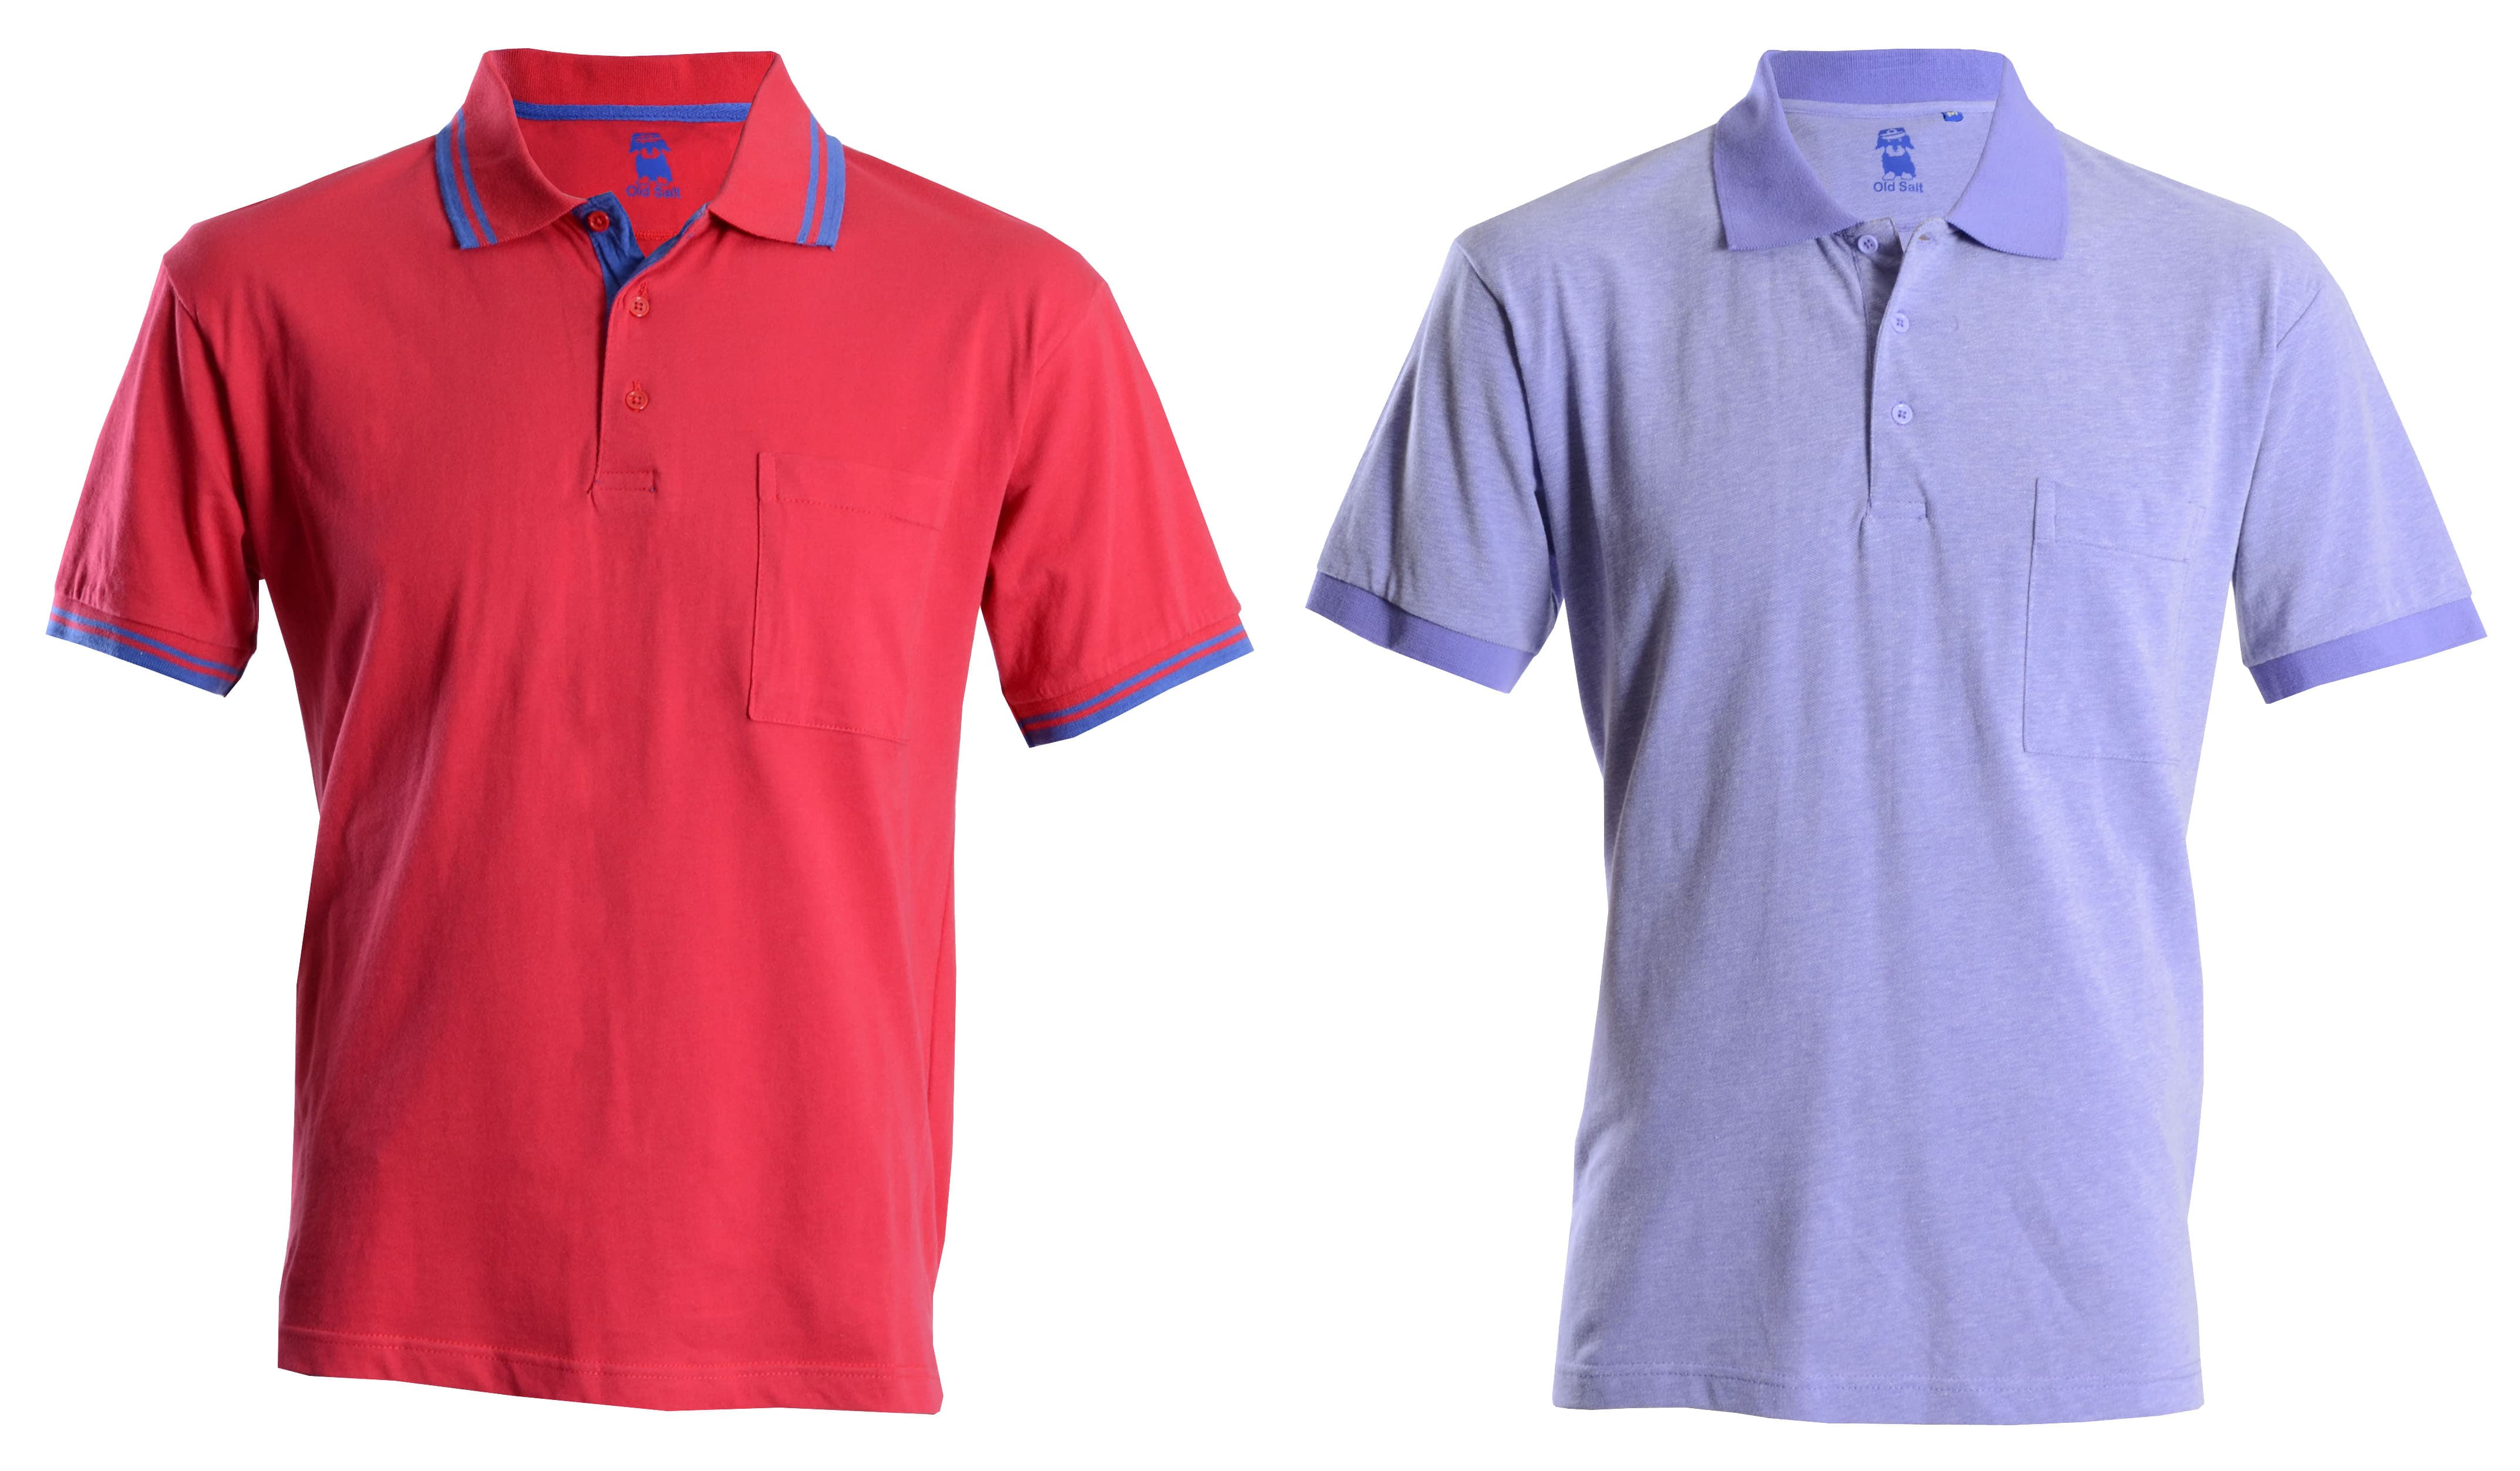 Shop Old Salt Polo Shirts by Double TWO - Perfect for a round of Golf!